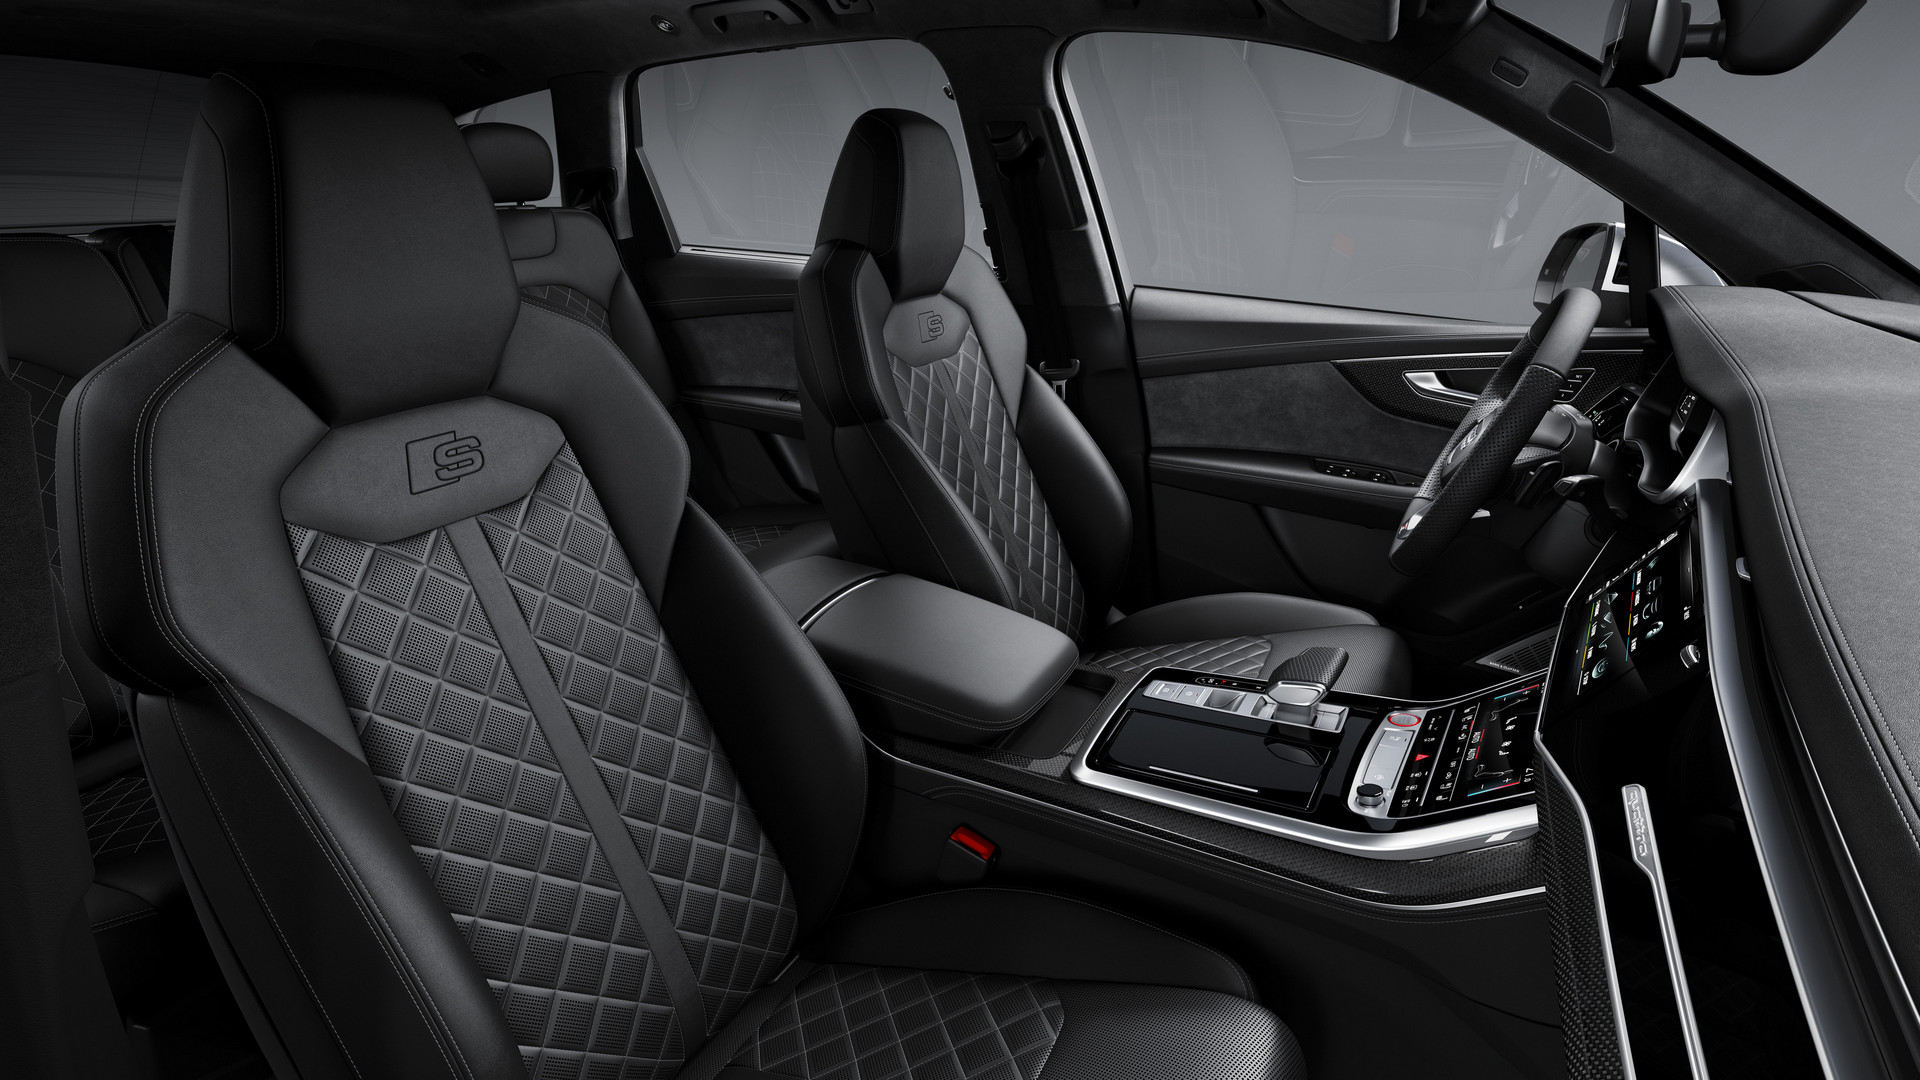 Audi SQ7 TDI Seats